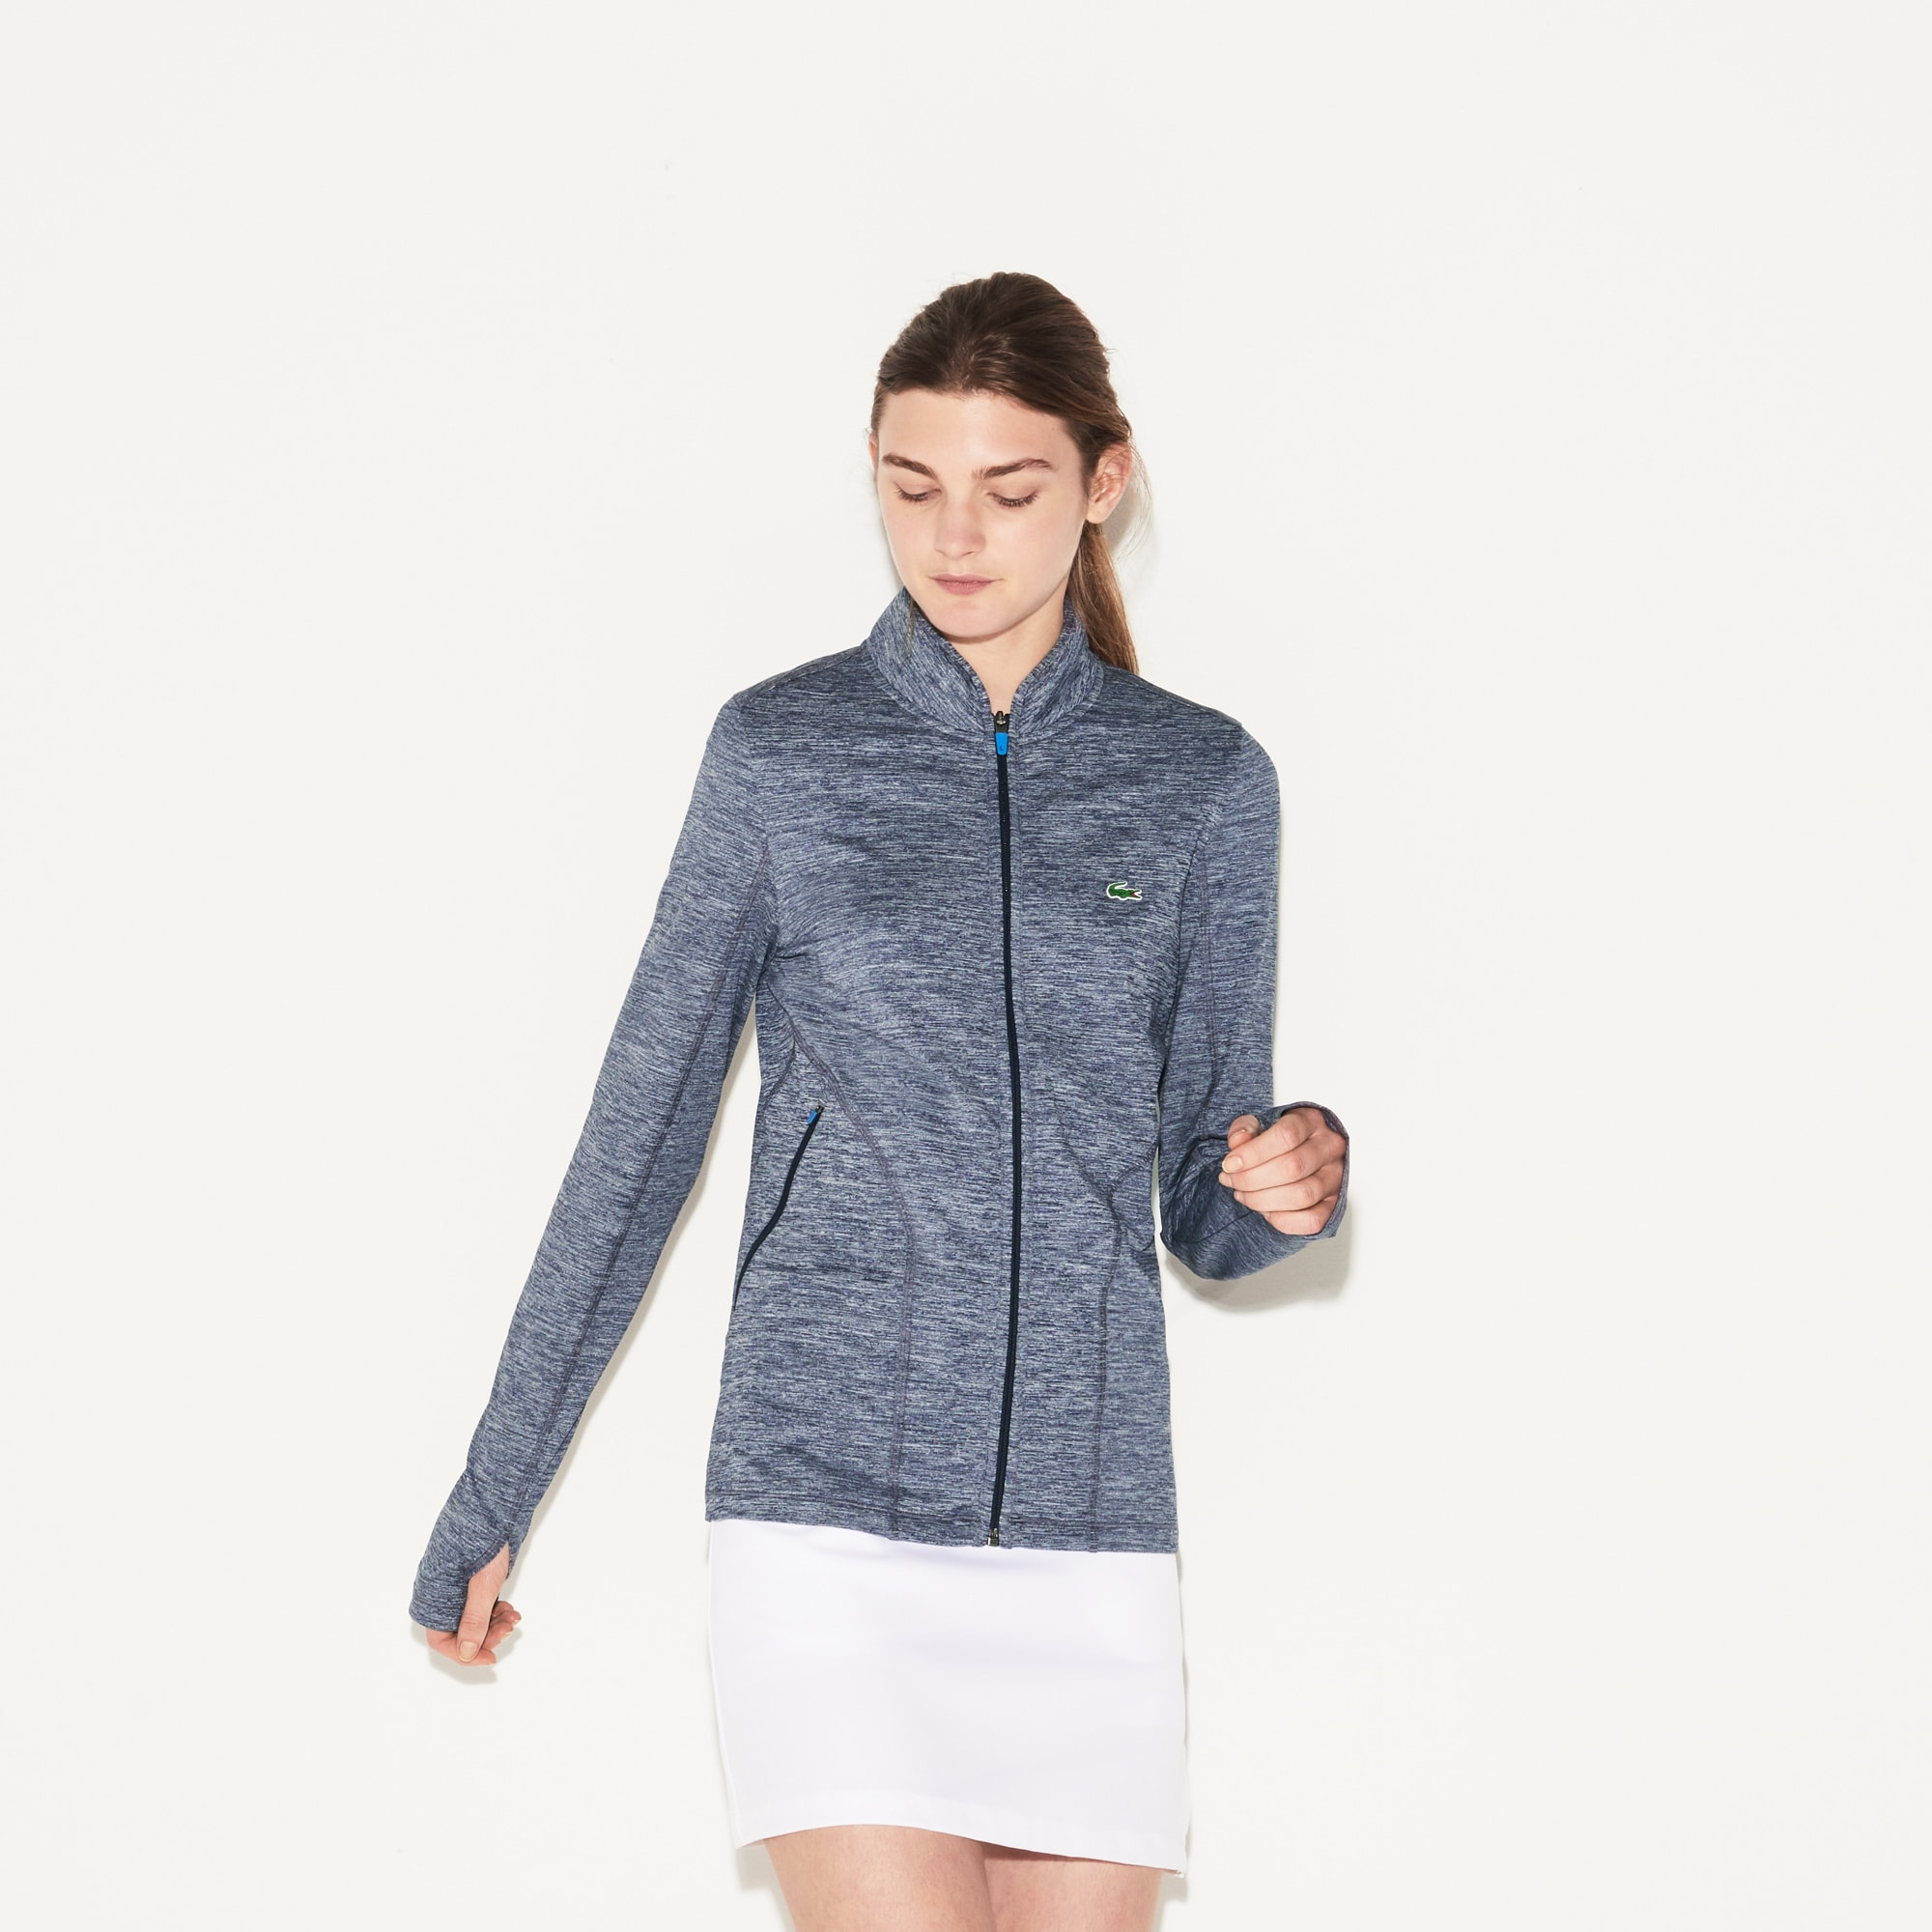 Women's Lacoste SPORT Golf Stretch Tech Midlayer Zip Sweatshirt